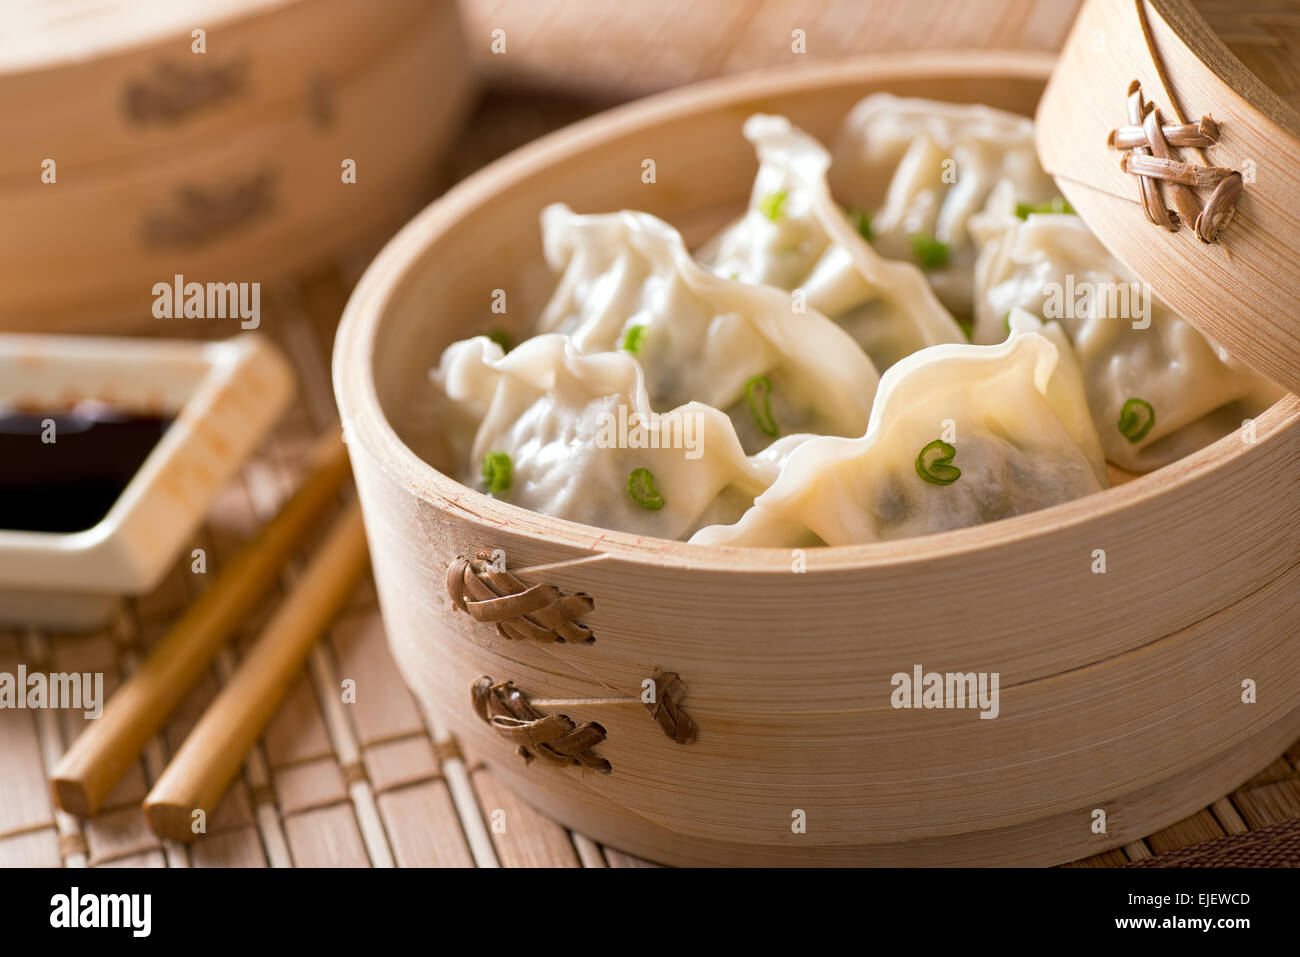 Dim sum with leeks, meat, and green onions in a bamboo steamer. - Stock Image